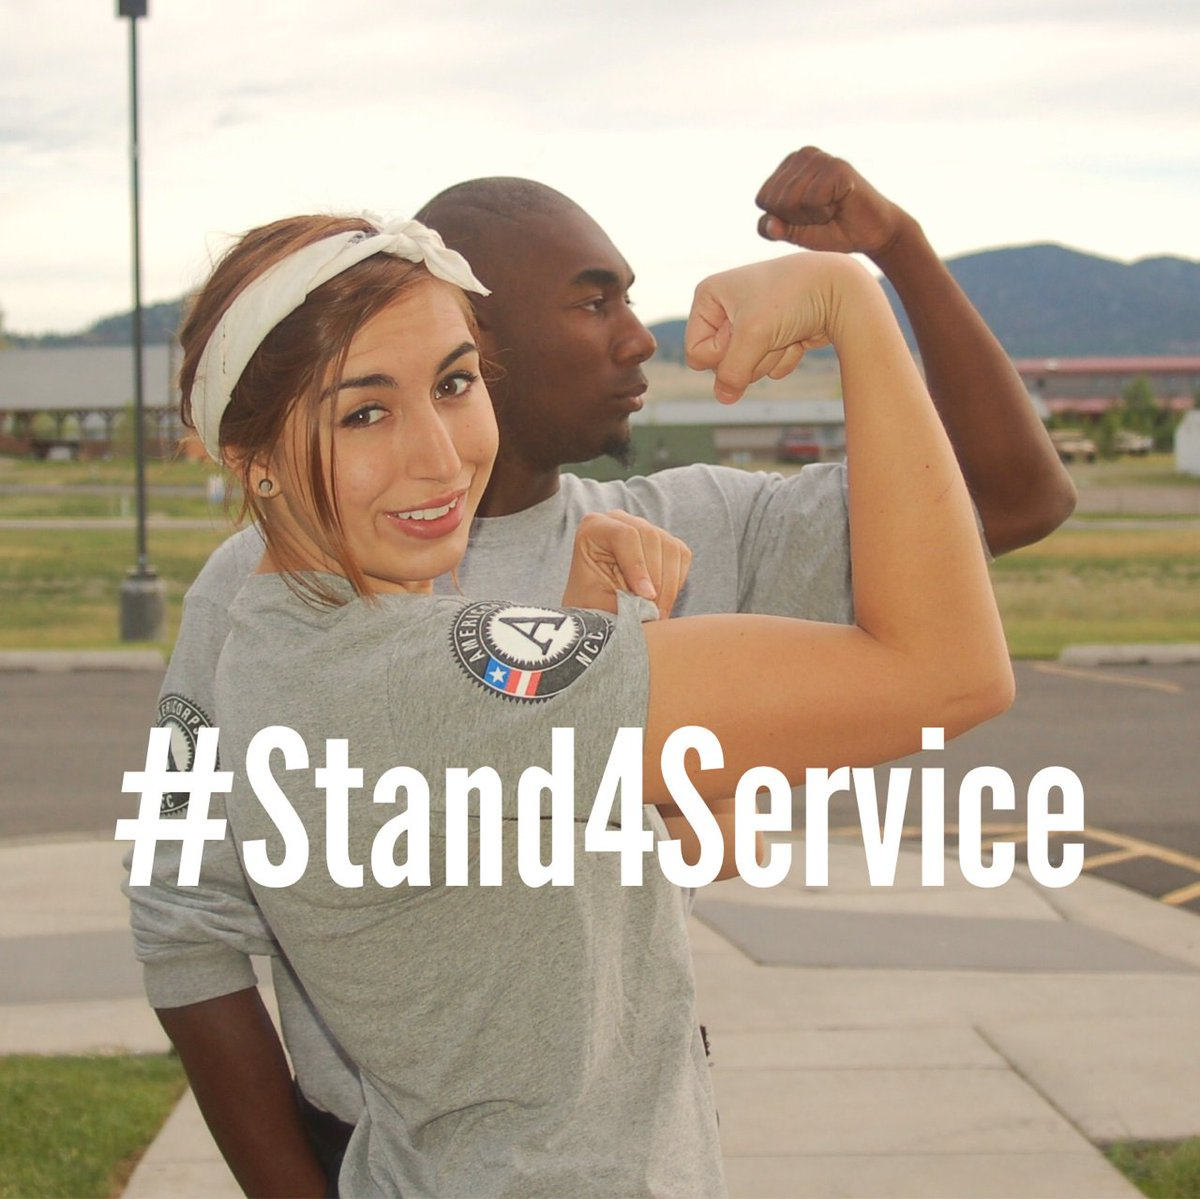 Alums, decisions about the future of @americorps are being made now. #Stand4Service today! https://t.co/oXgKBpSDqt https://t.co/PeJpB1hSFN